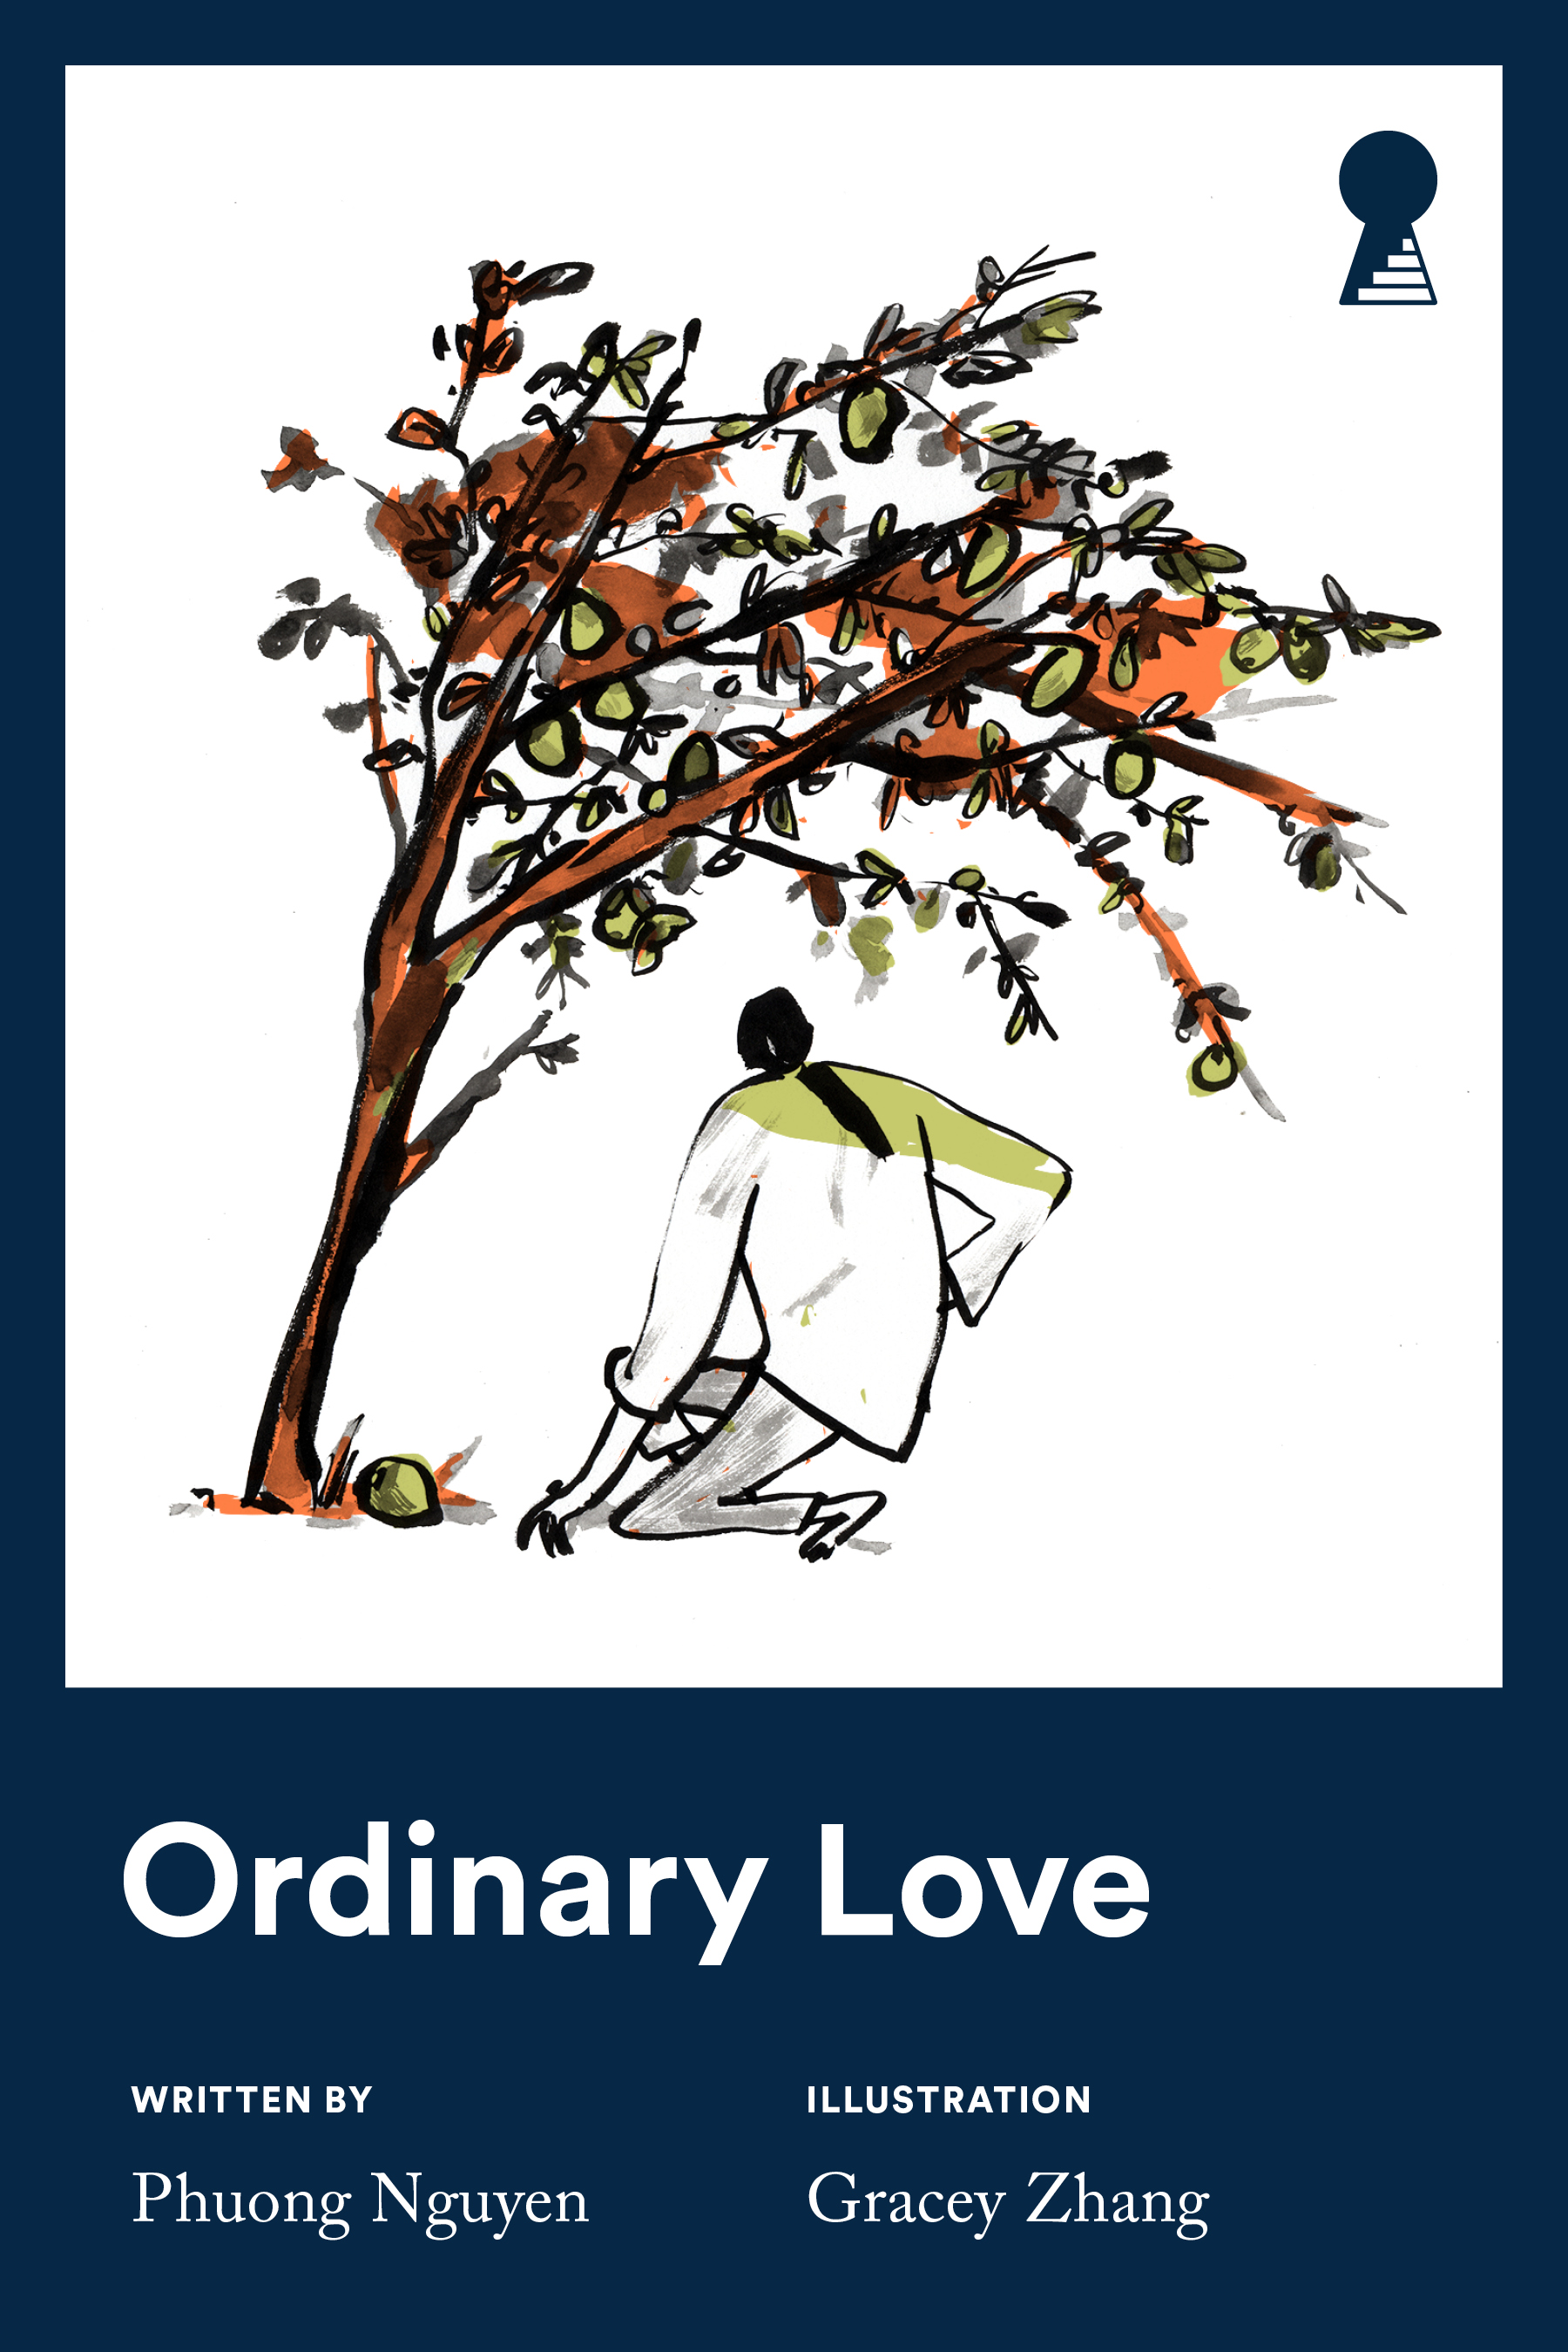 TheVault_OrdinaryLove_Cover.jpg